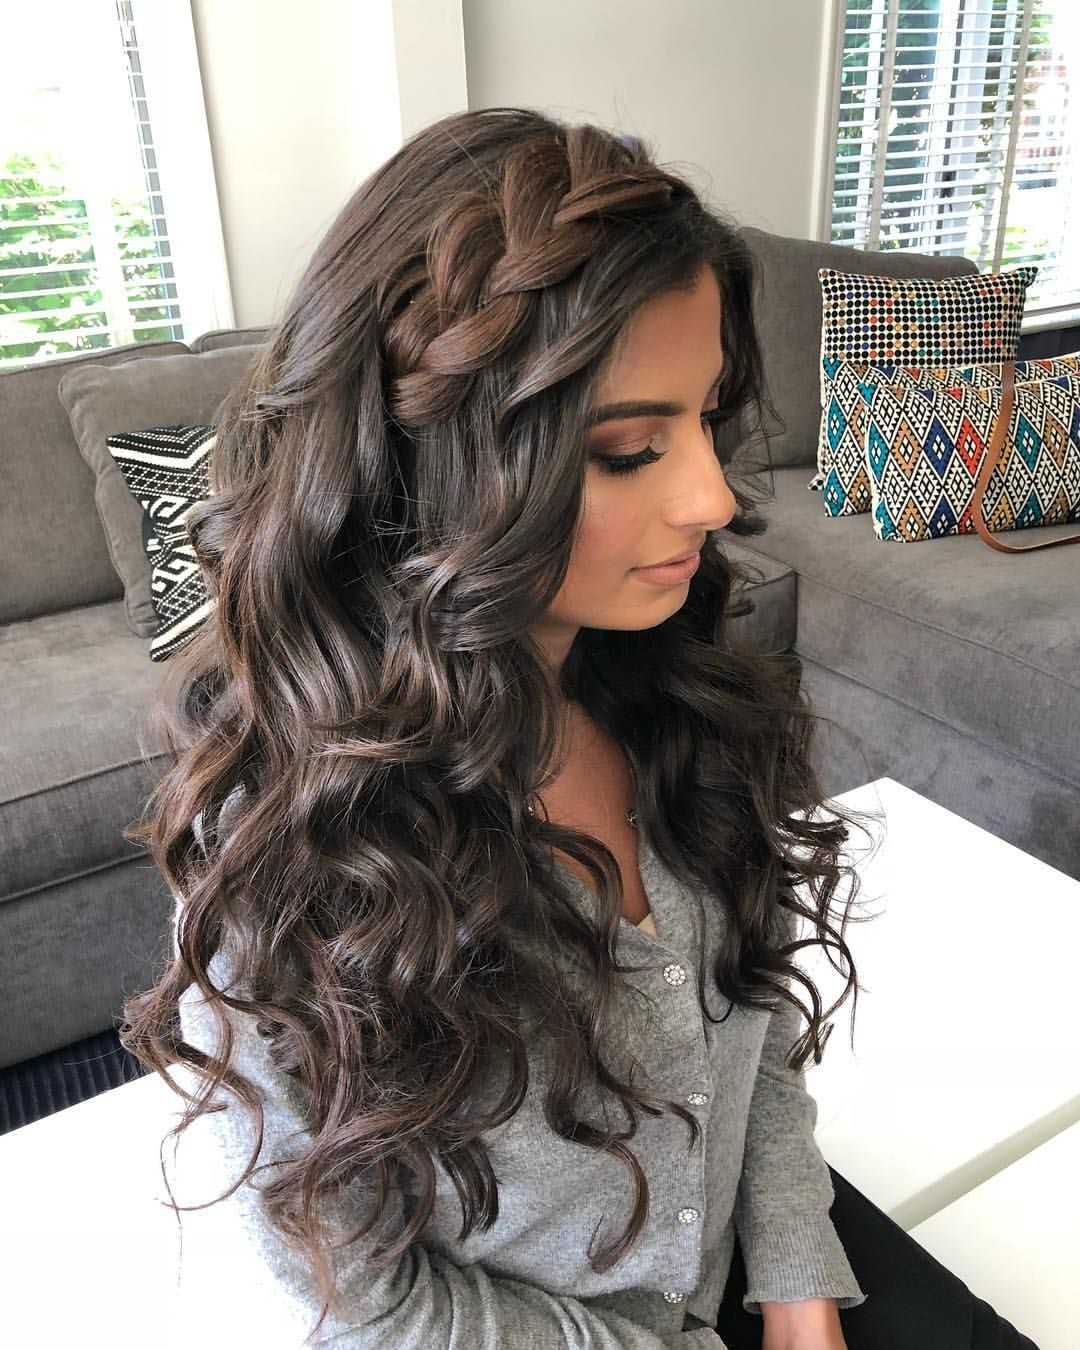 Marielle Azar Dror On Instagram Big Hair Don T Care Makeup By Glossipgirl Biggerthebett In 2020 Quince Hairstyles Wedding Hairstyles For Long Hair Hair Styles